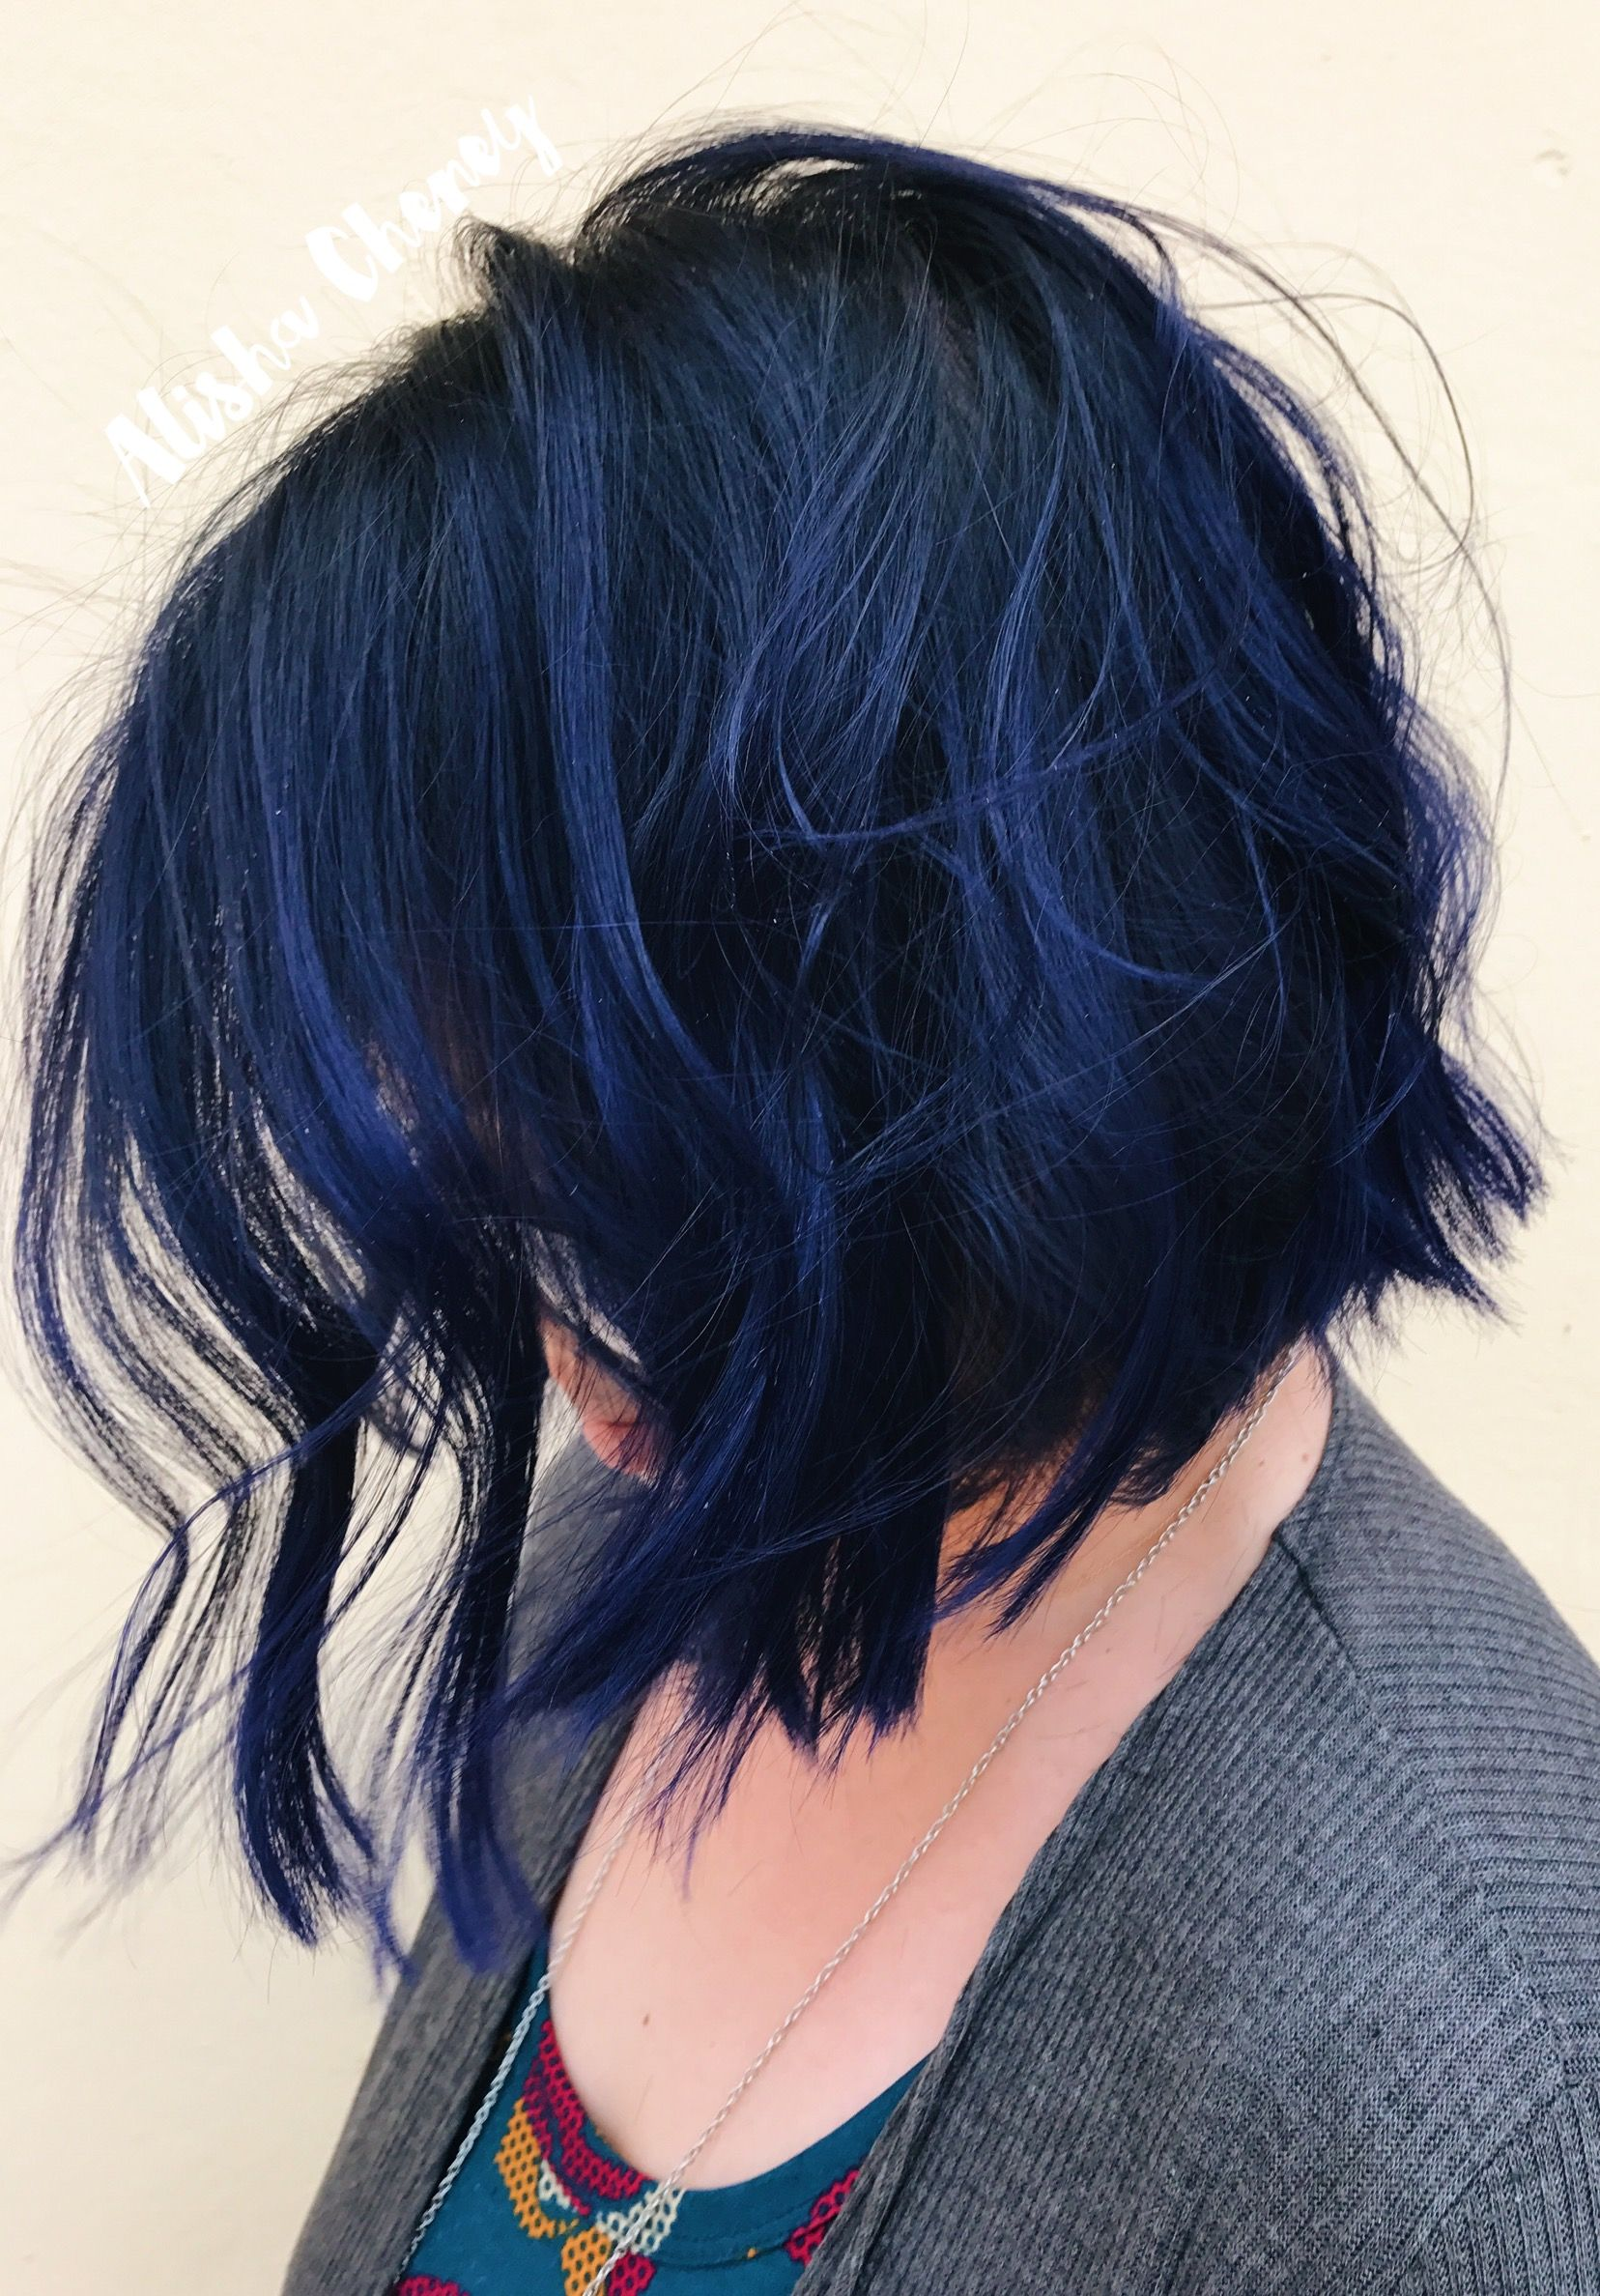 Blue Hair Bob Vibrant Hair Styles Bob Hairstyles Medium Length Hair Styles